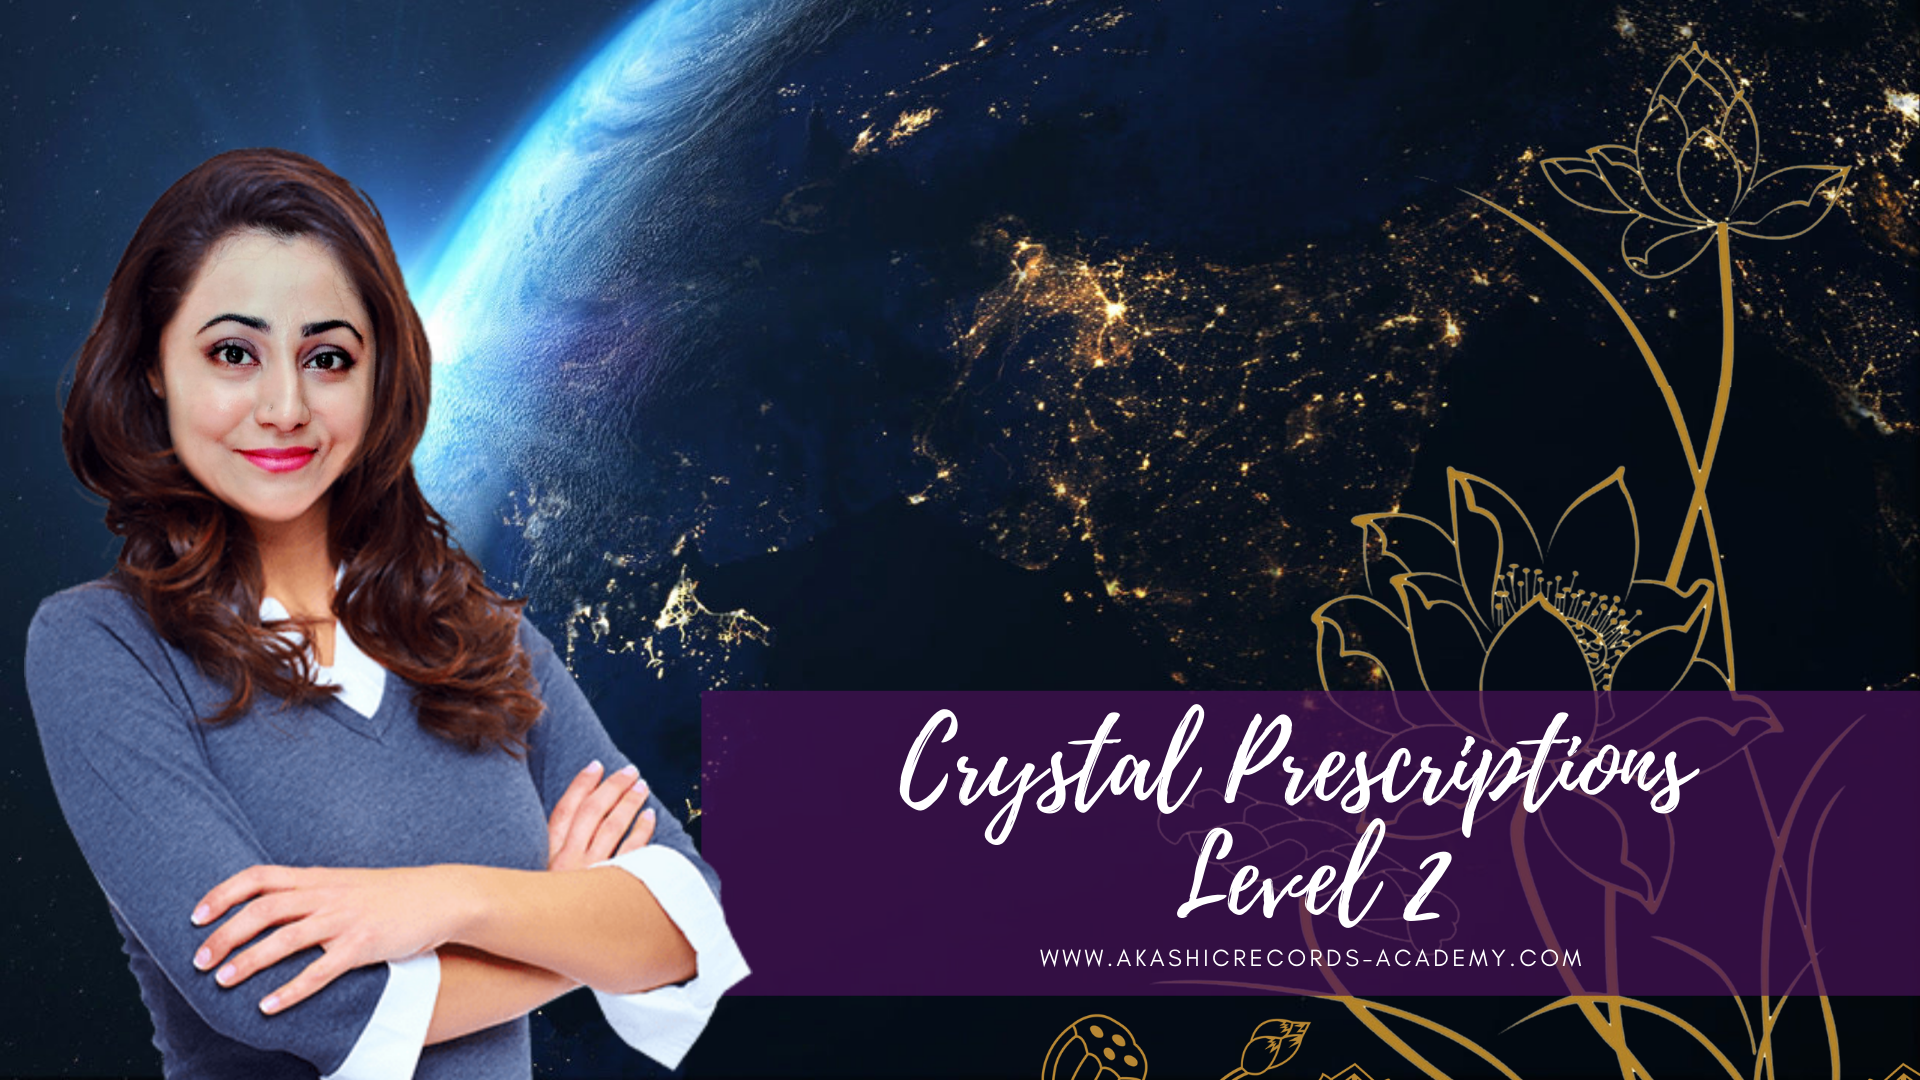 Crystal Prescriptions Advance Level 2